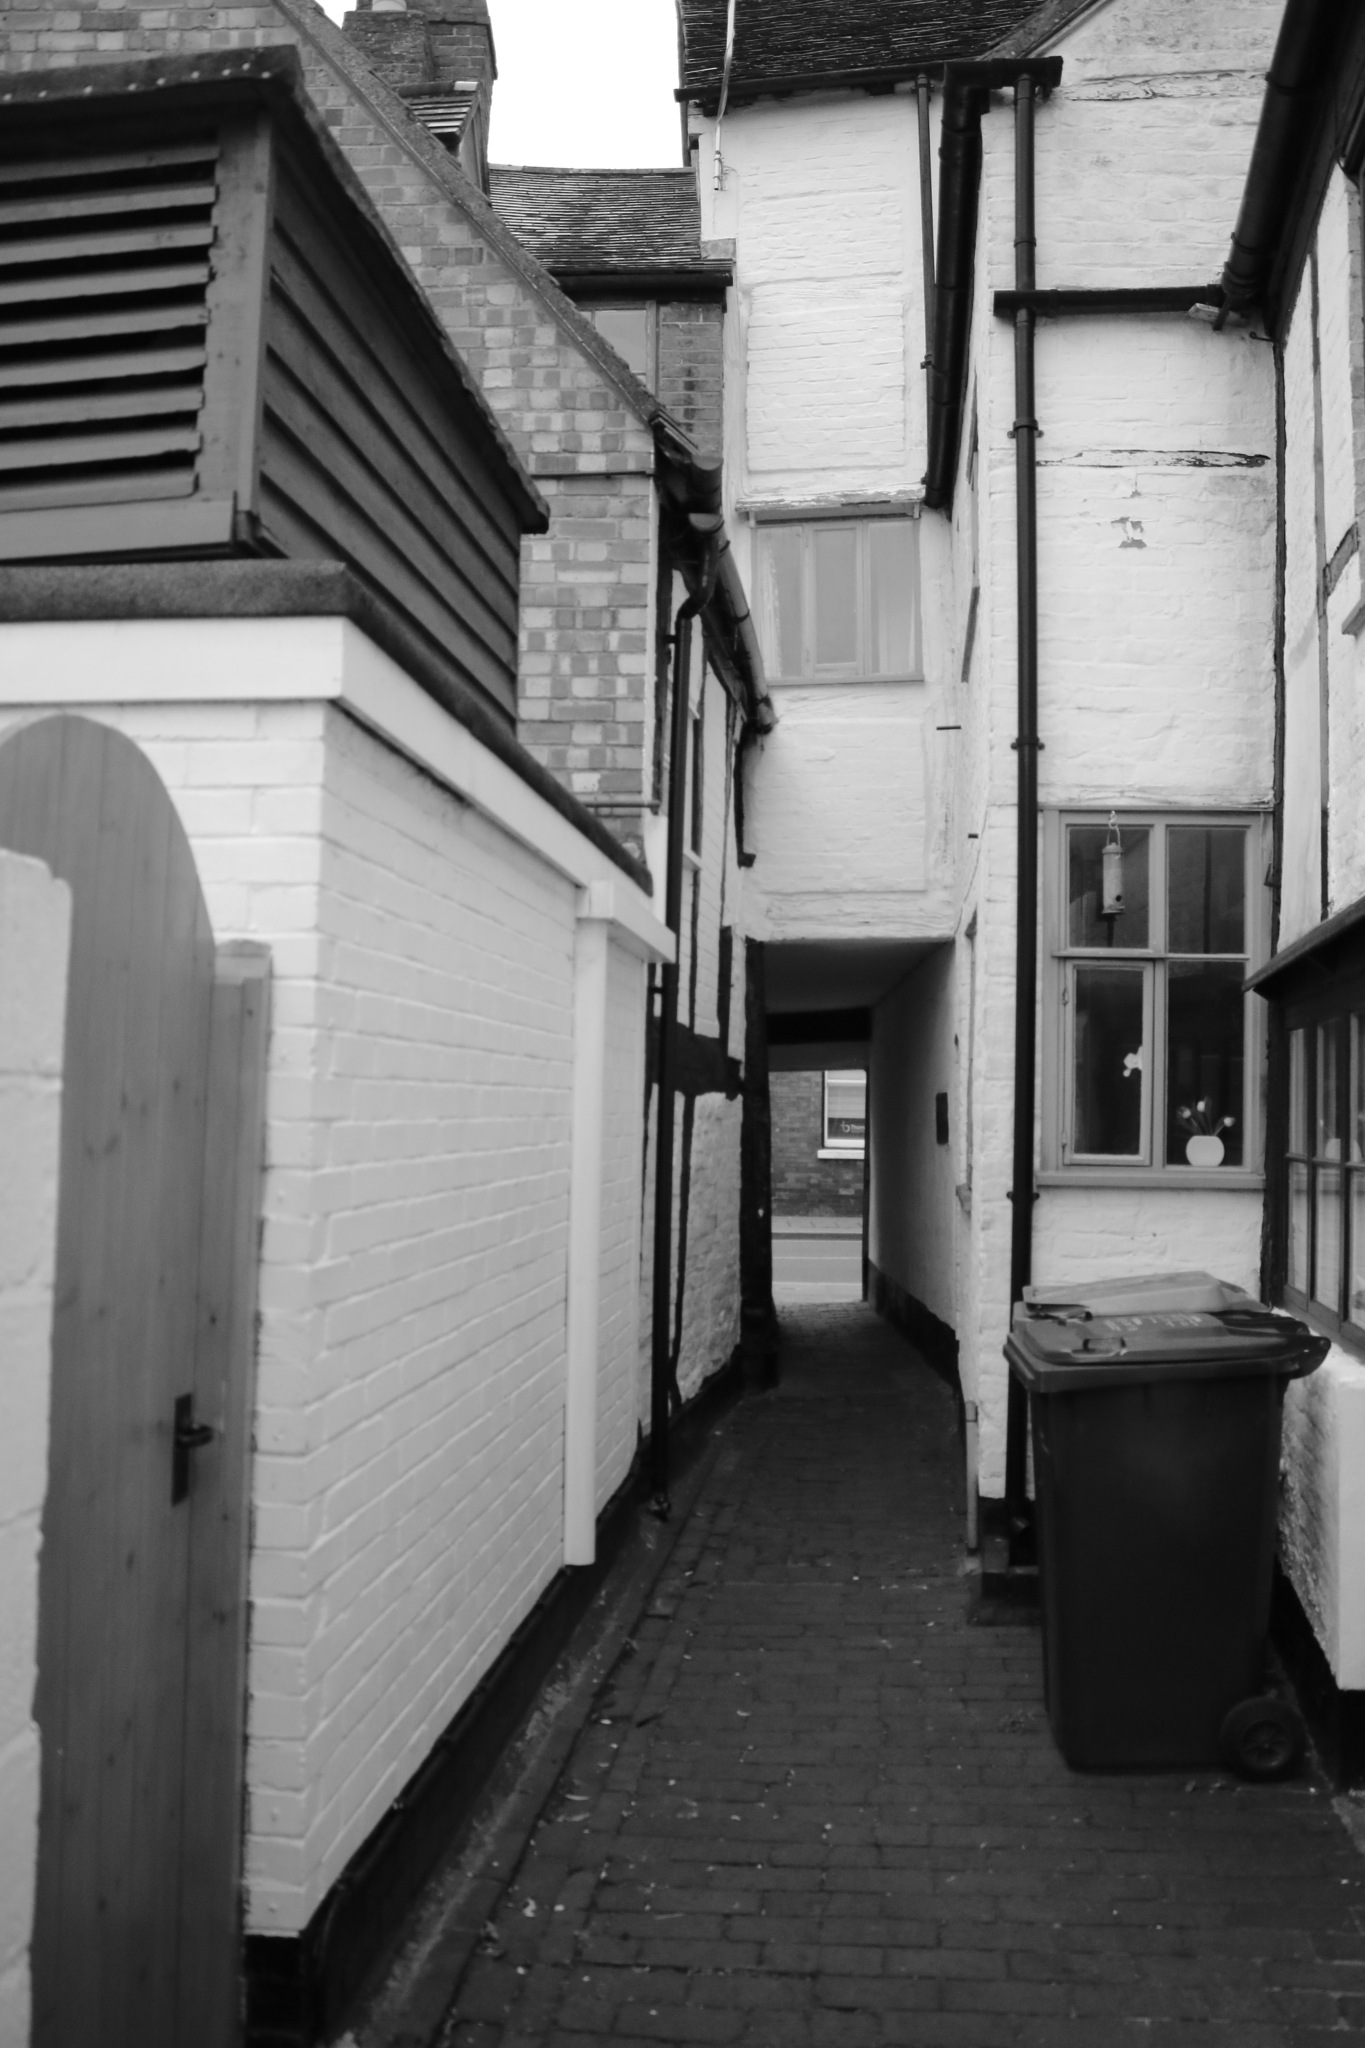 An alley, one of several alley ways in Tewkesbury by Mo Dessouki